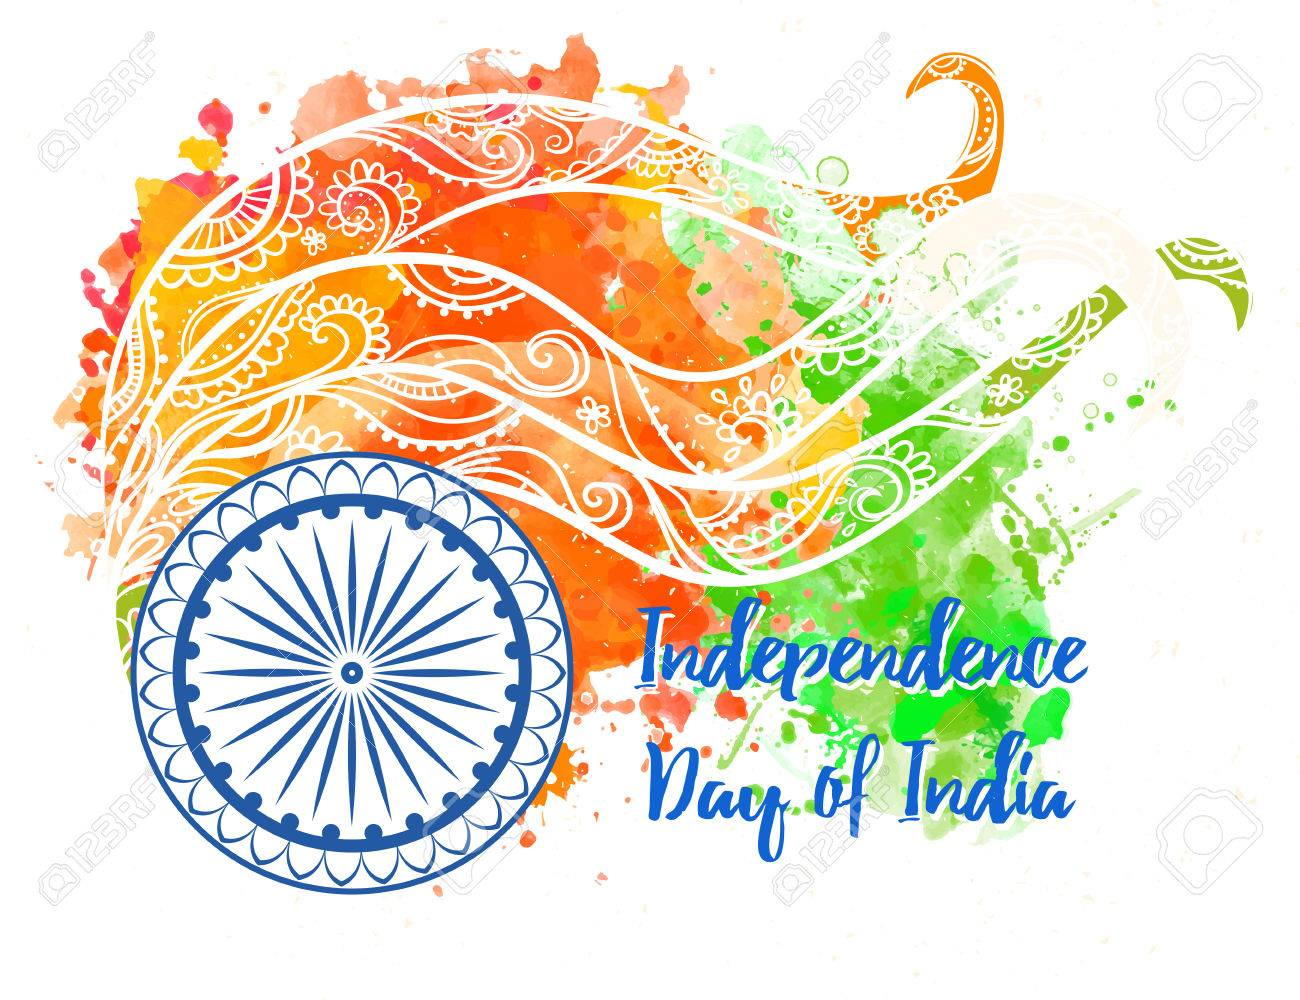 Ornametal Poster Independence Day Of India It Celebrated Annually On August 15 Invitation Card In Vector Kaleidoscope Medallion India Arabic